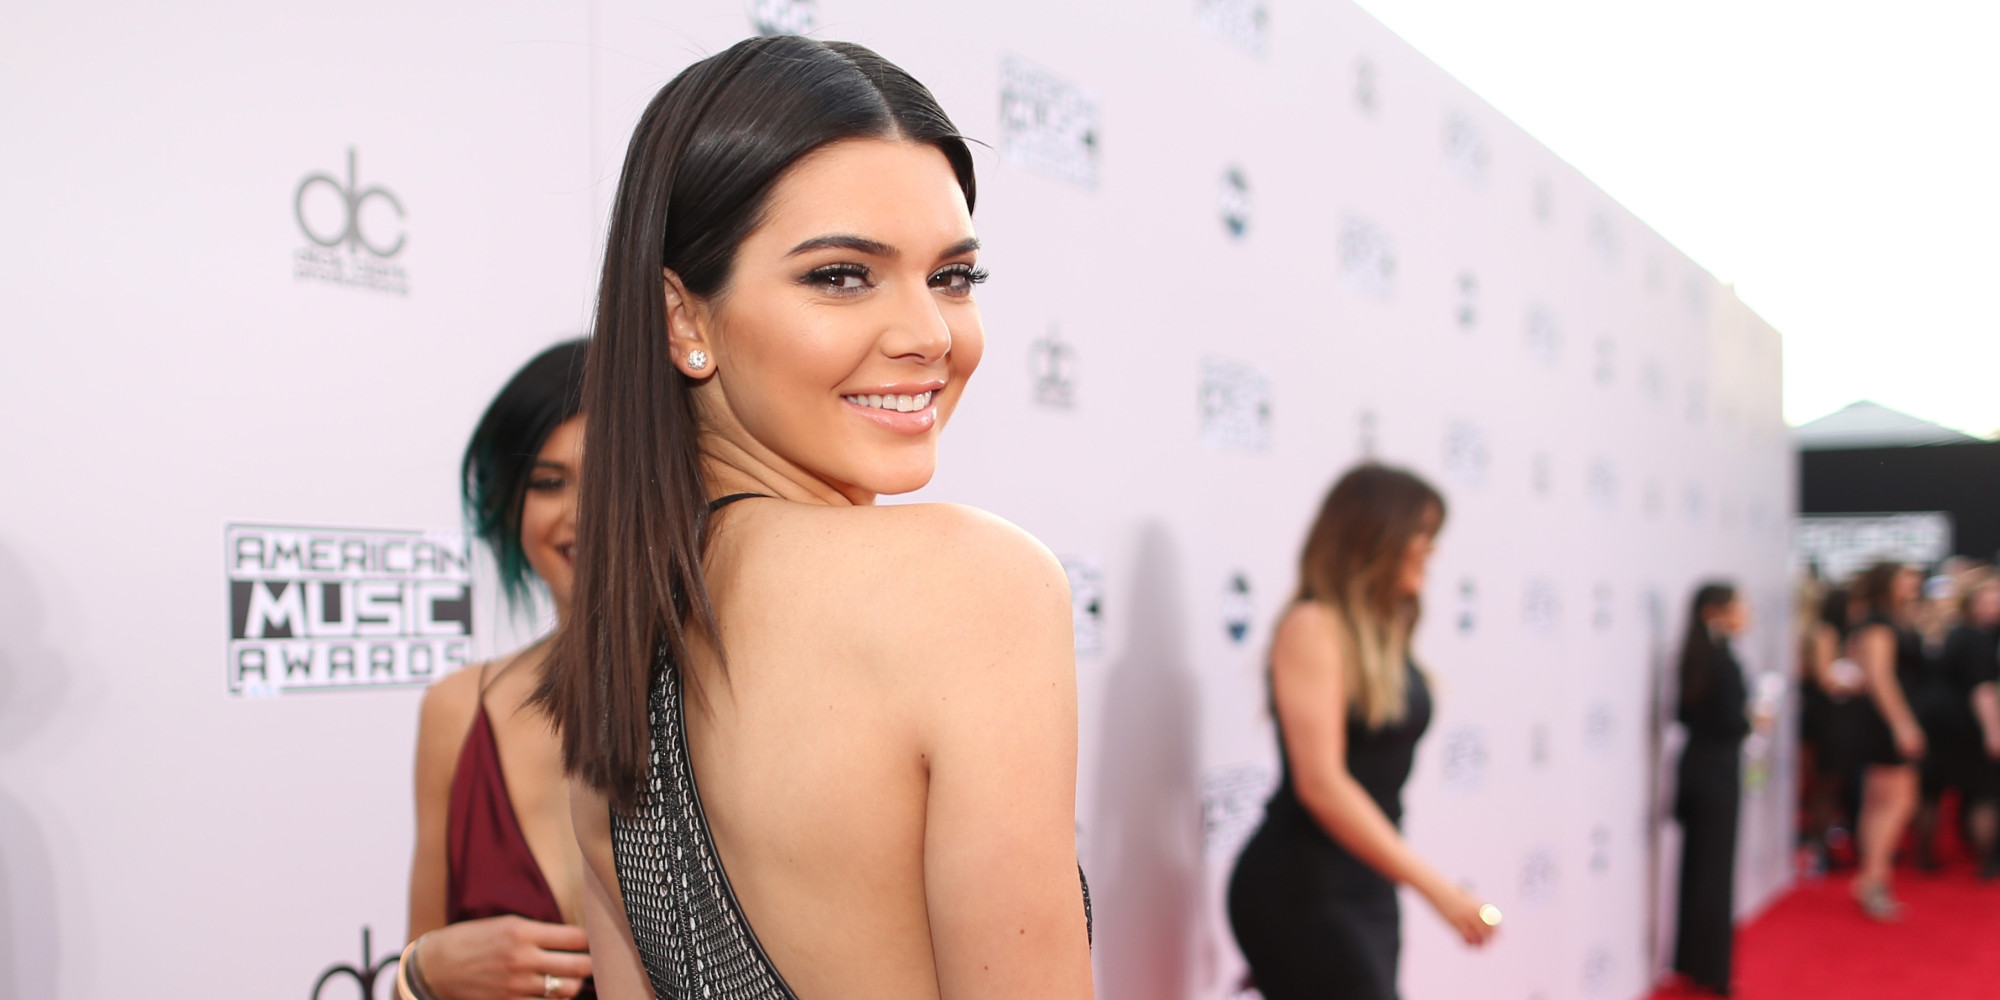 Kendall Jenner's makeup-free selfie is gorgeous